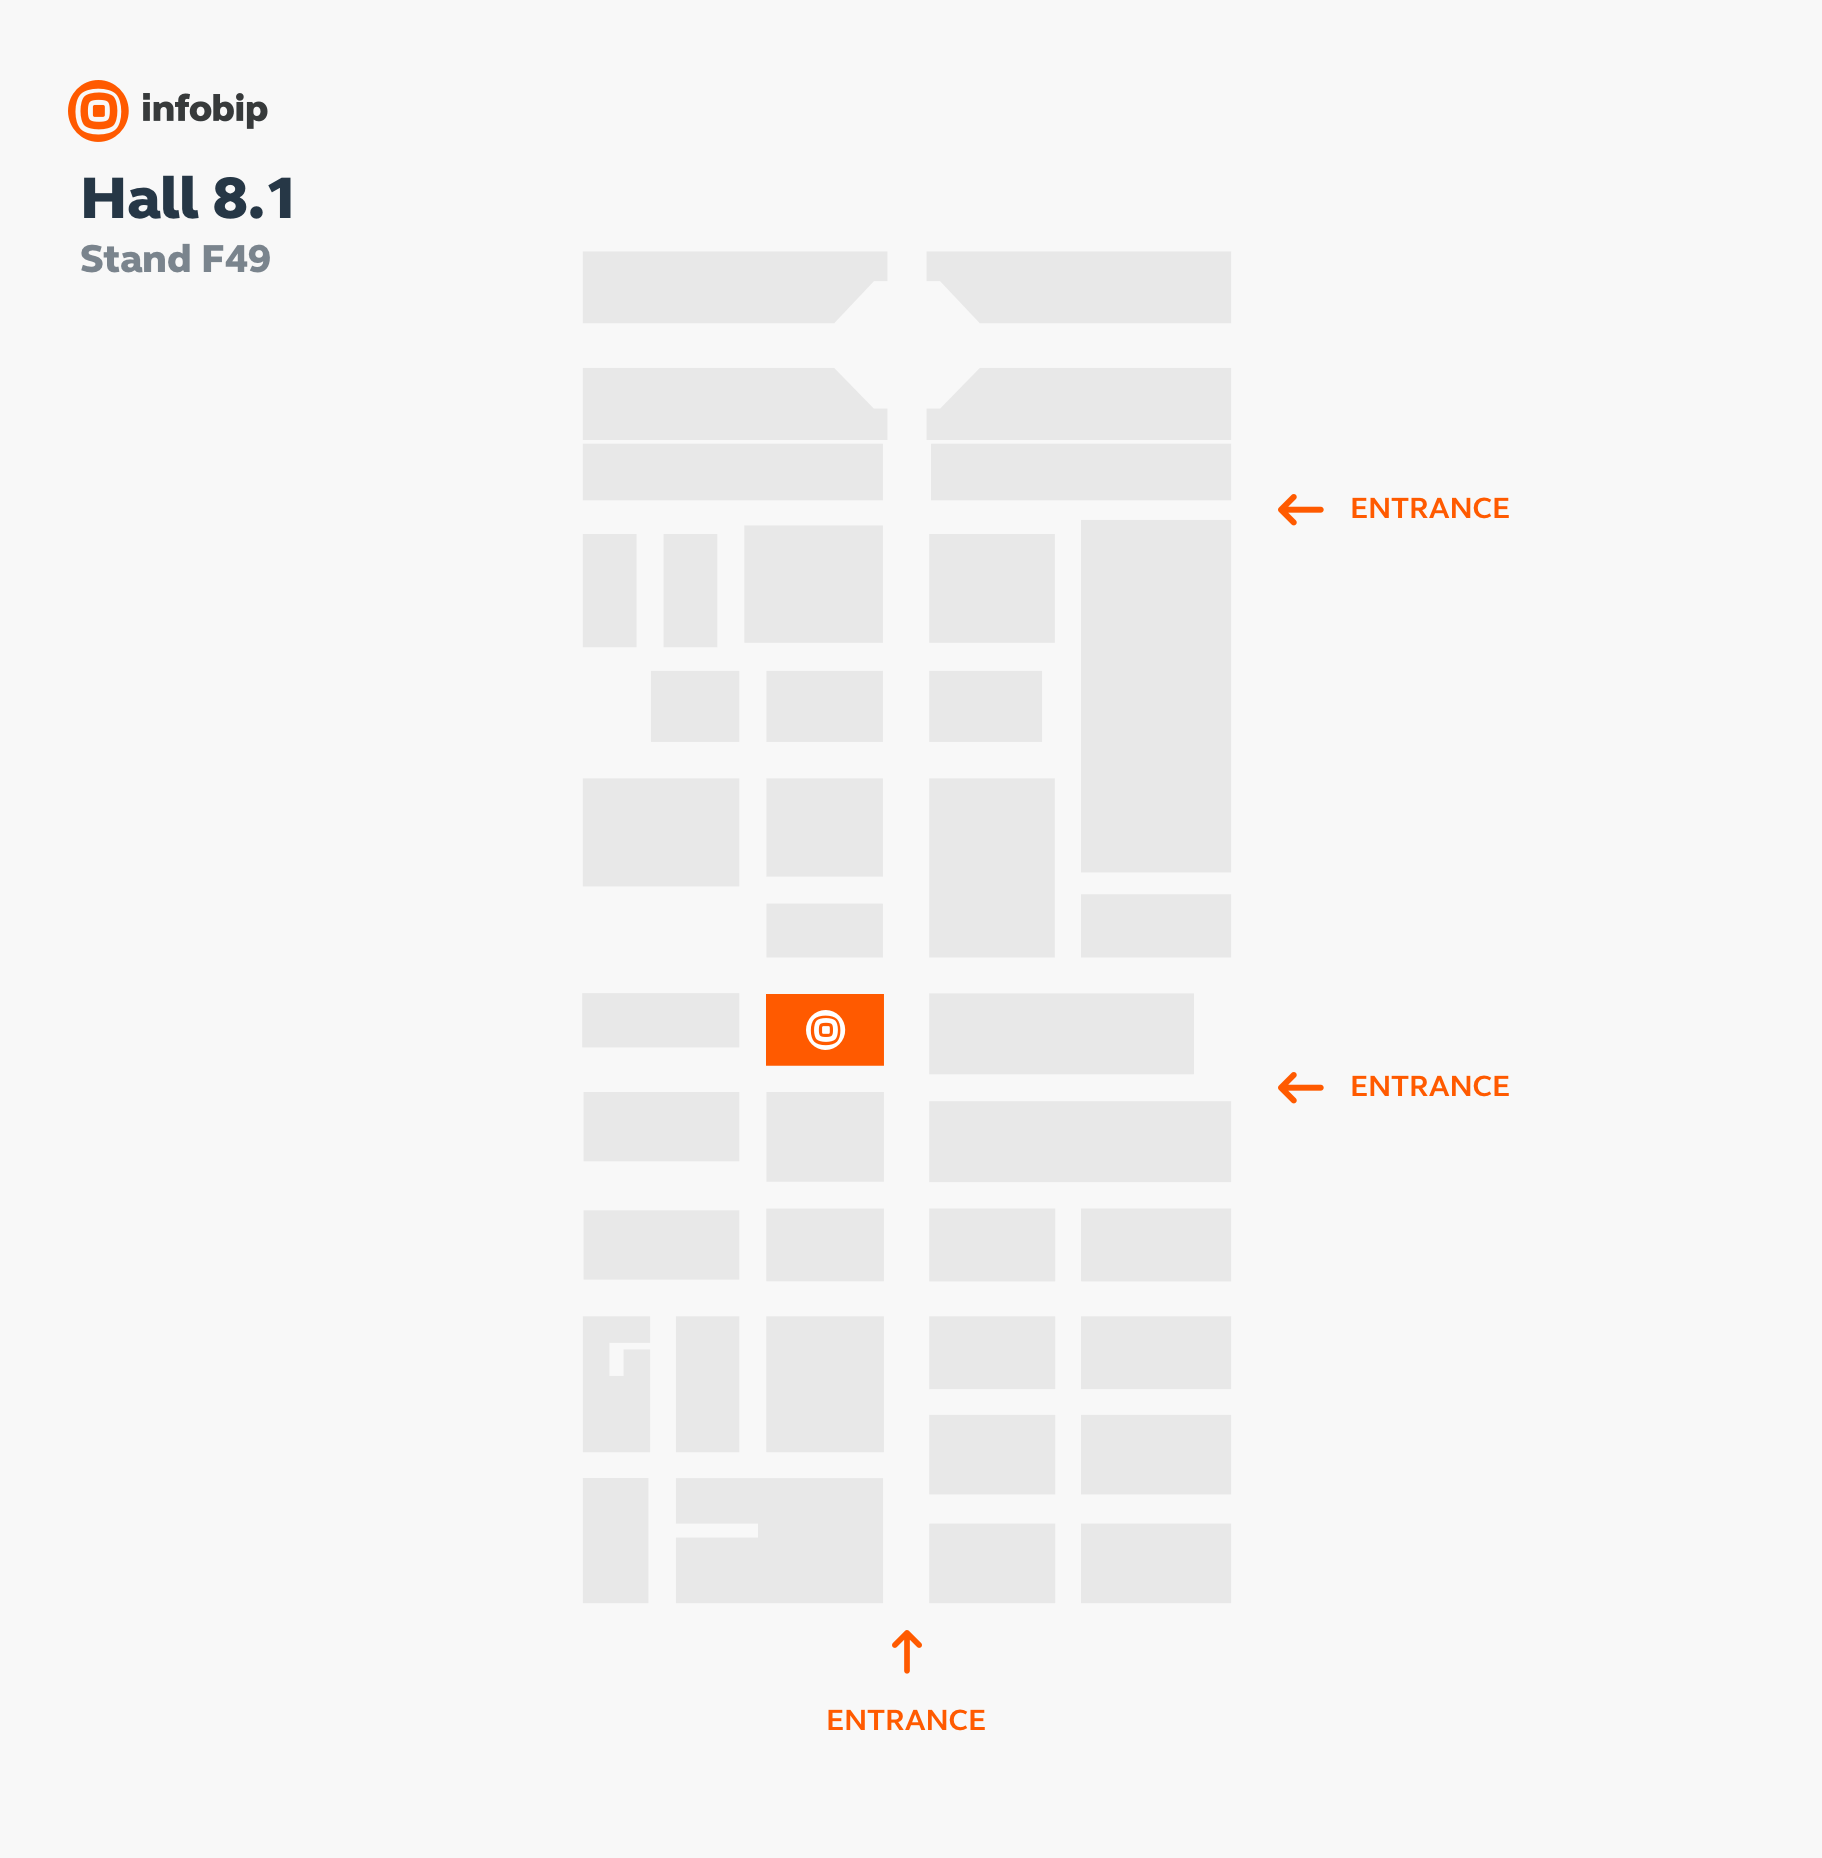 infobip stand location map